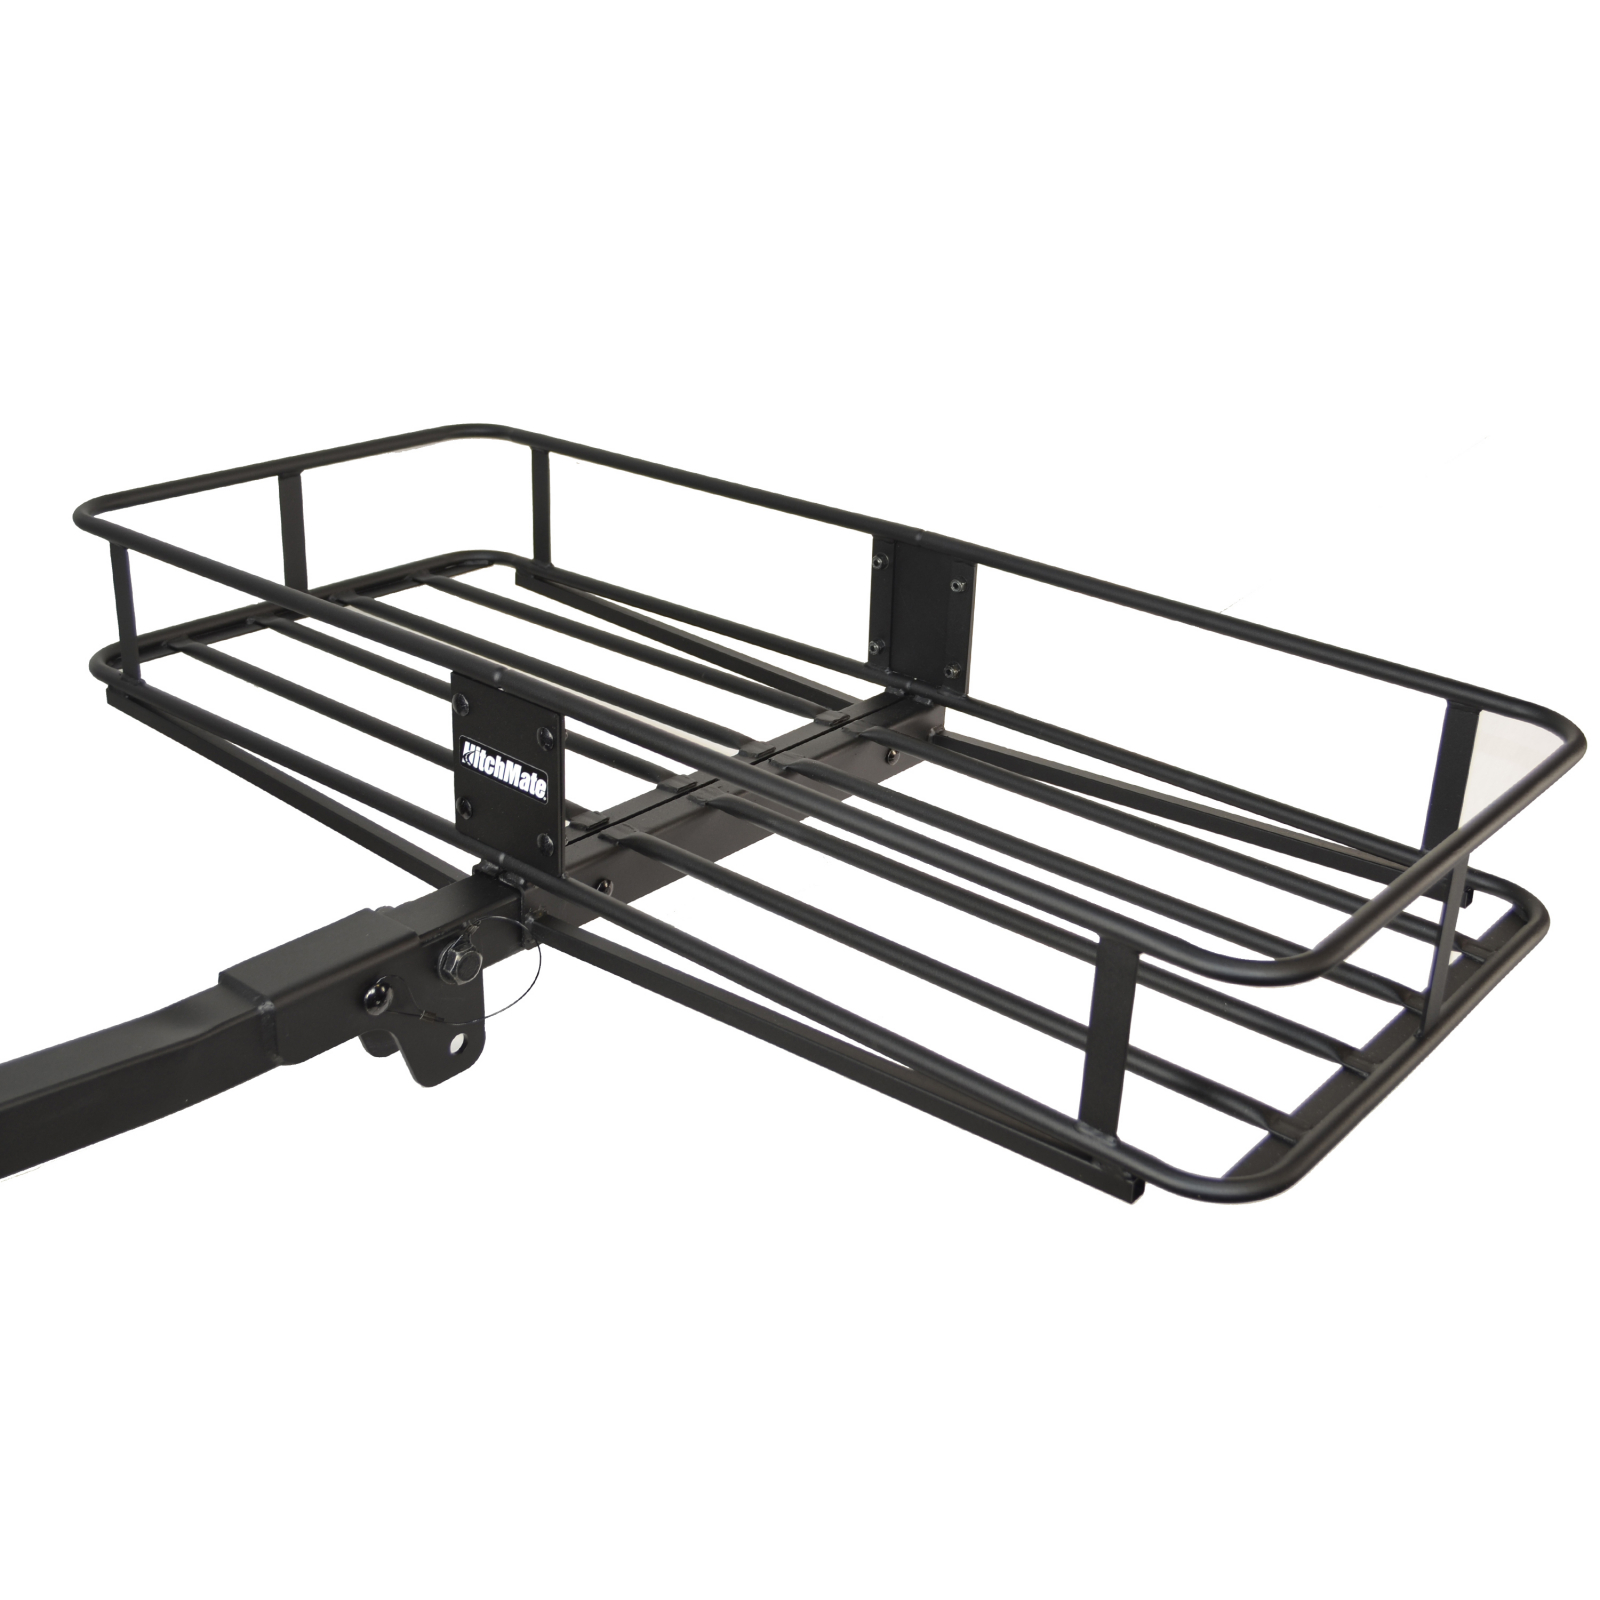 Heininger Automotive HitchMate Folding Cargo Carrier